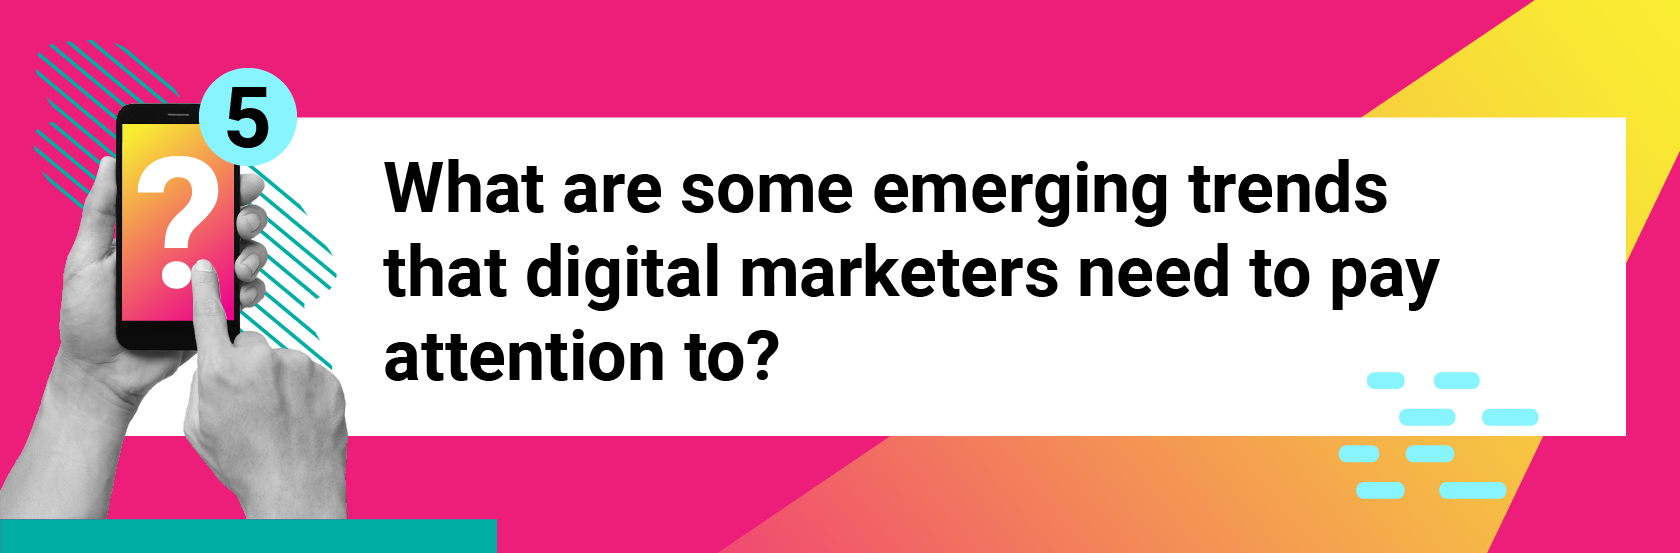 What are some emerging trends that digital marketers need to pay attention to?